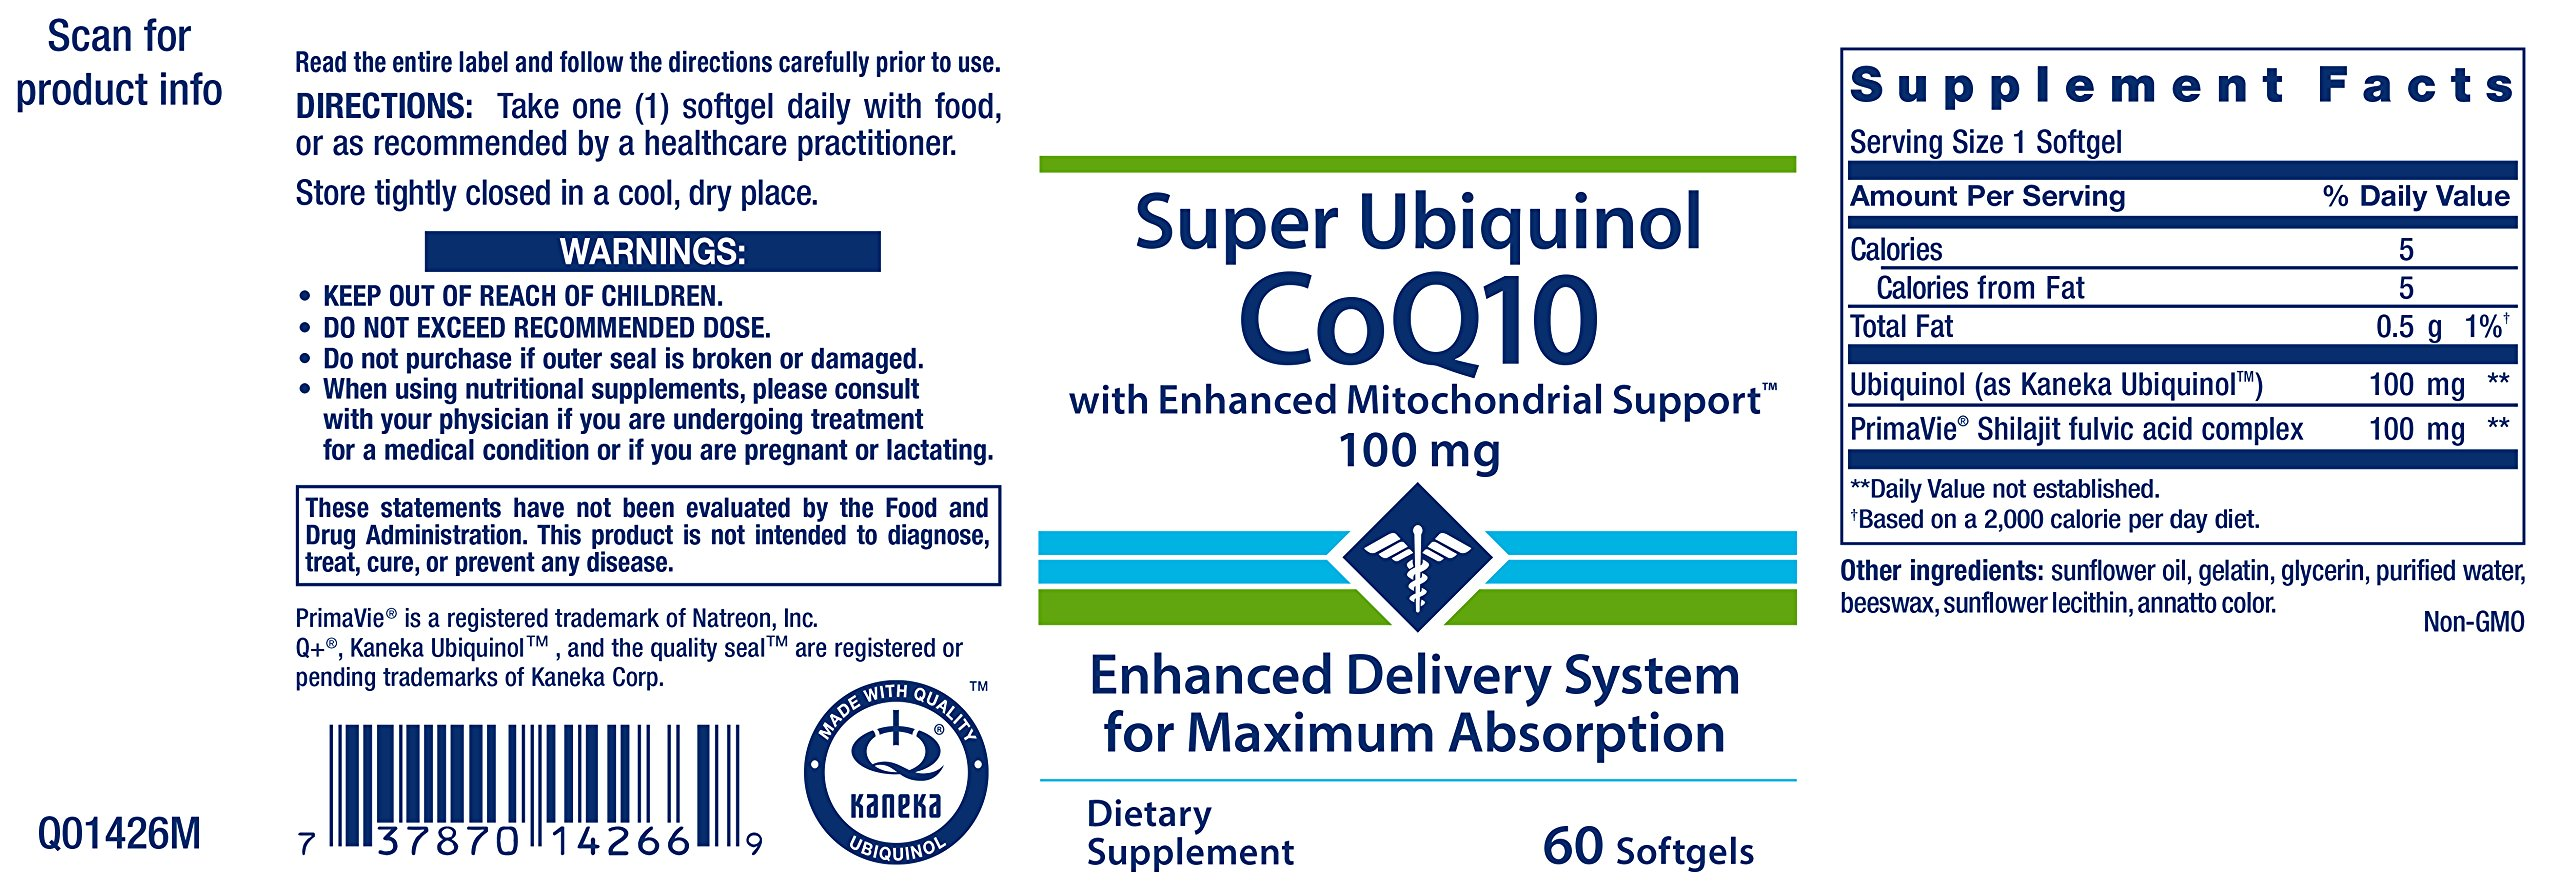 Life Extension Super Ubiquinol COQ10 with Enhanced Mitochondrial Support 100 mg 60 Softgels by Life Extension (Image #2)